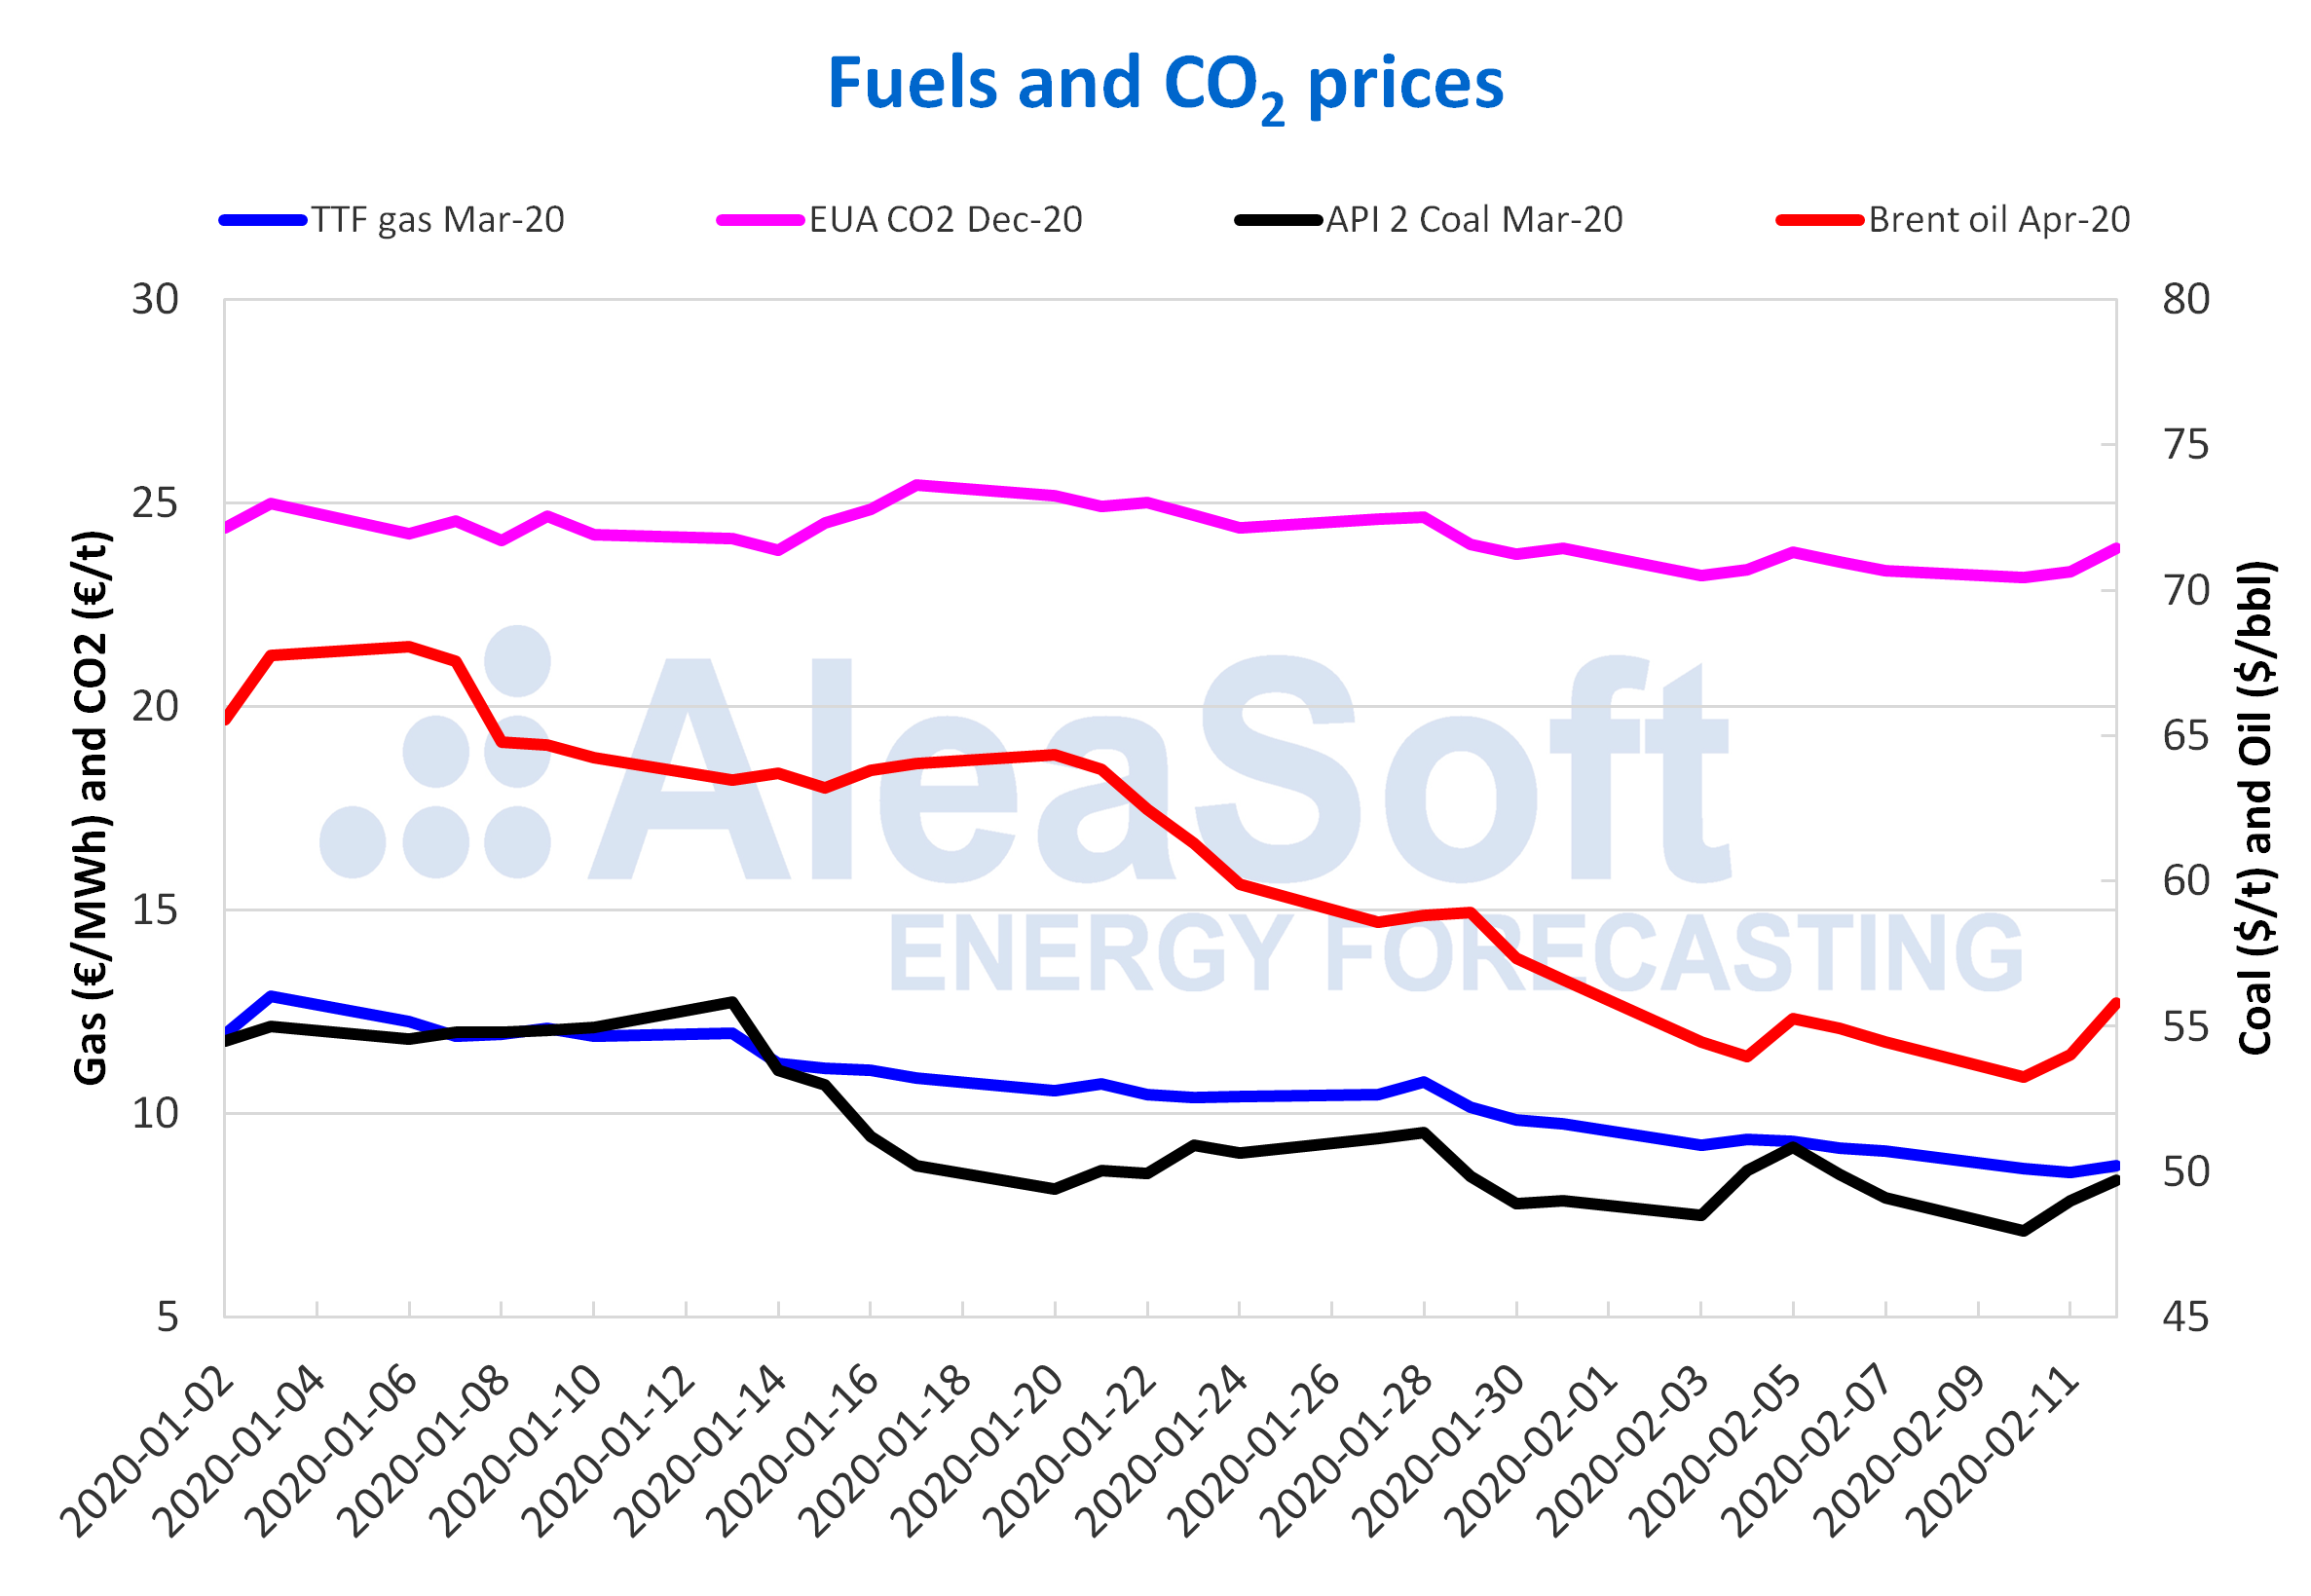 AleaSoft - Prices gas coal Brent oil CO2